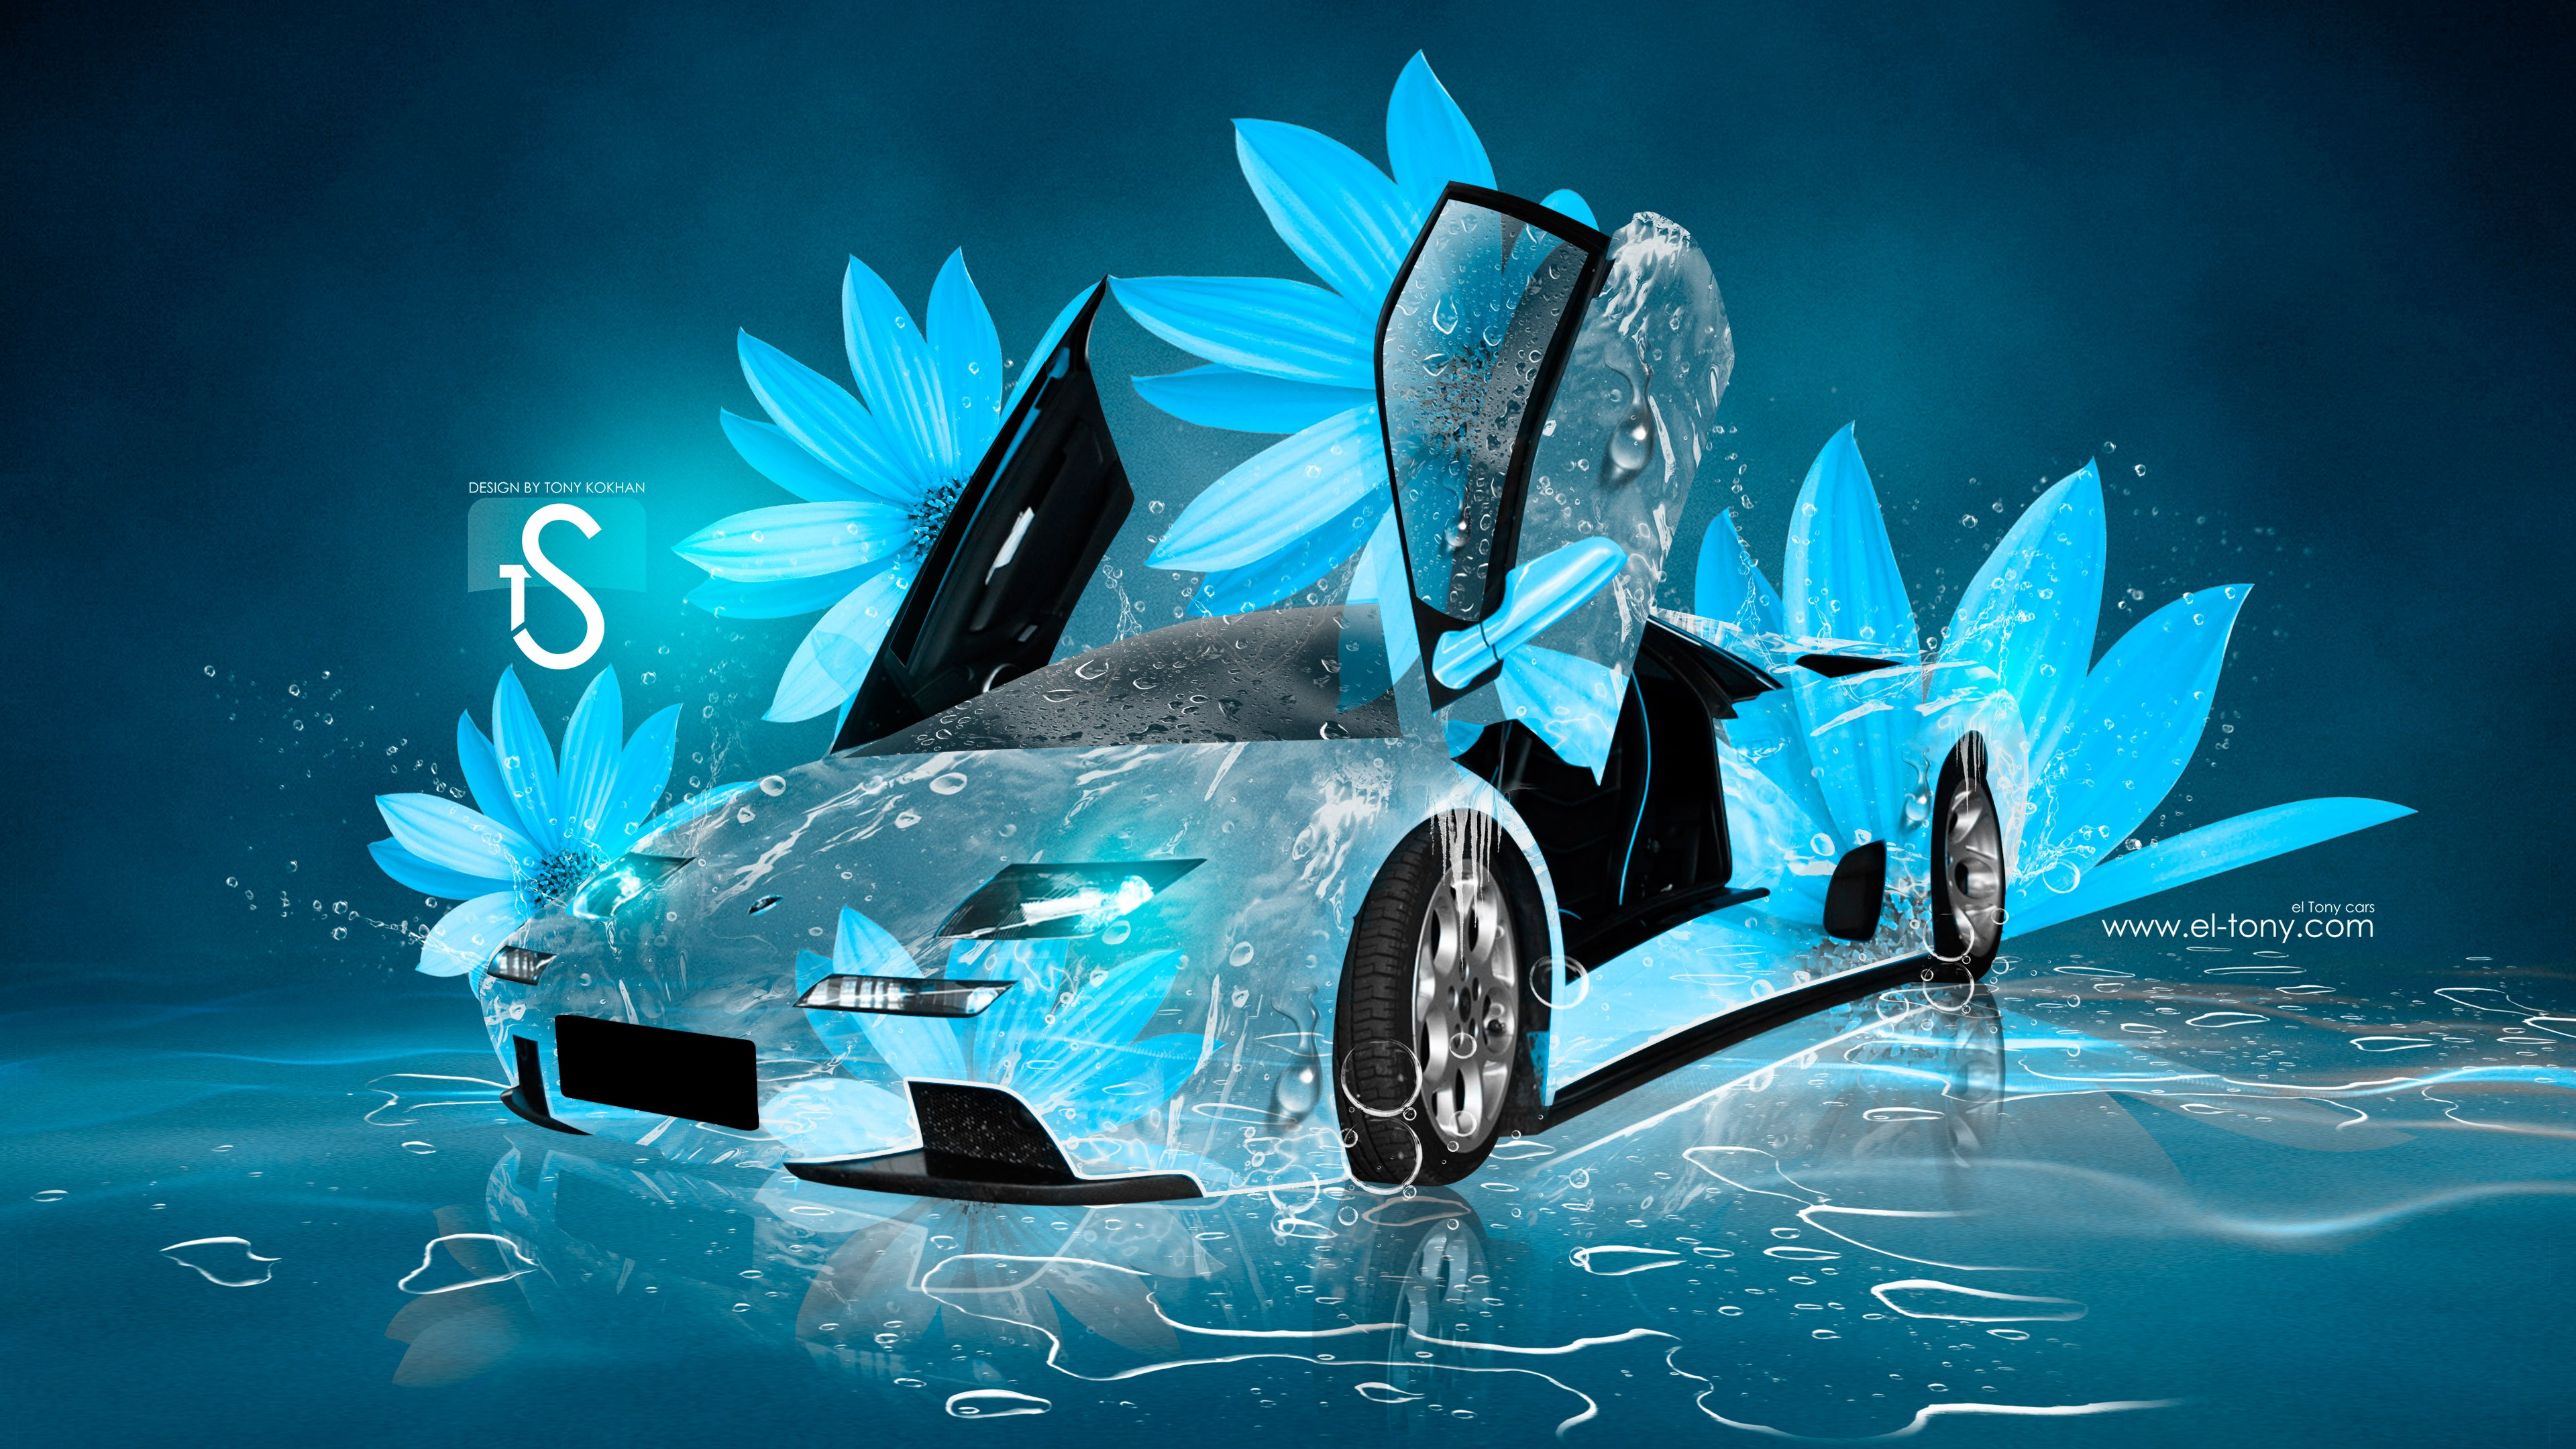 Lamborghini Diablo Open Doors Super Water Ice Neon TonyFlowers Neural Network Flowers Art Car 2019 Blue Azure White 4K Wallpapers design by Tony Kokhan v image